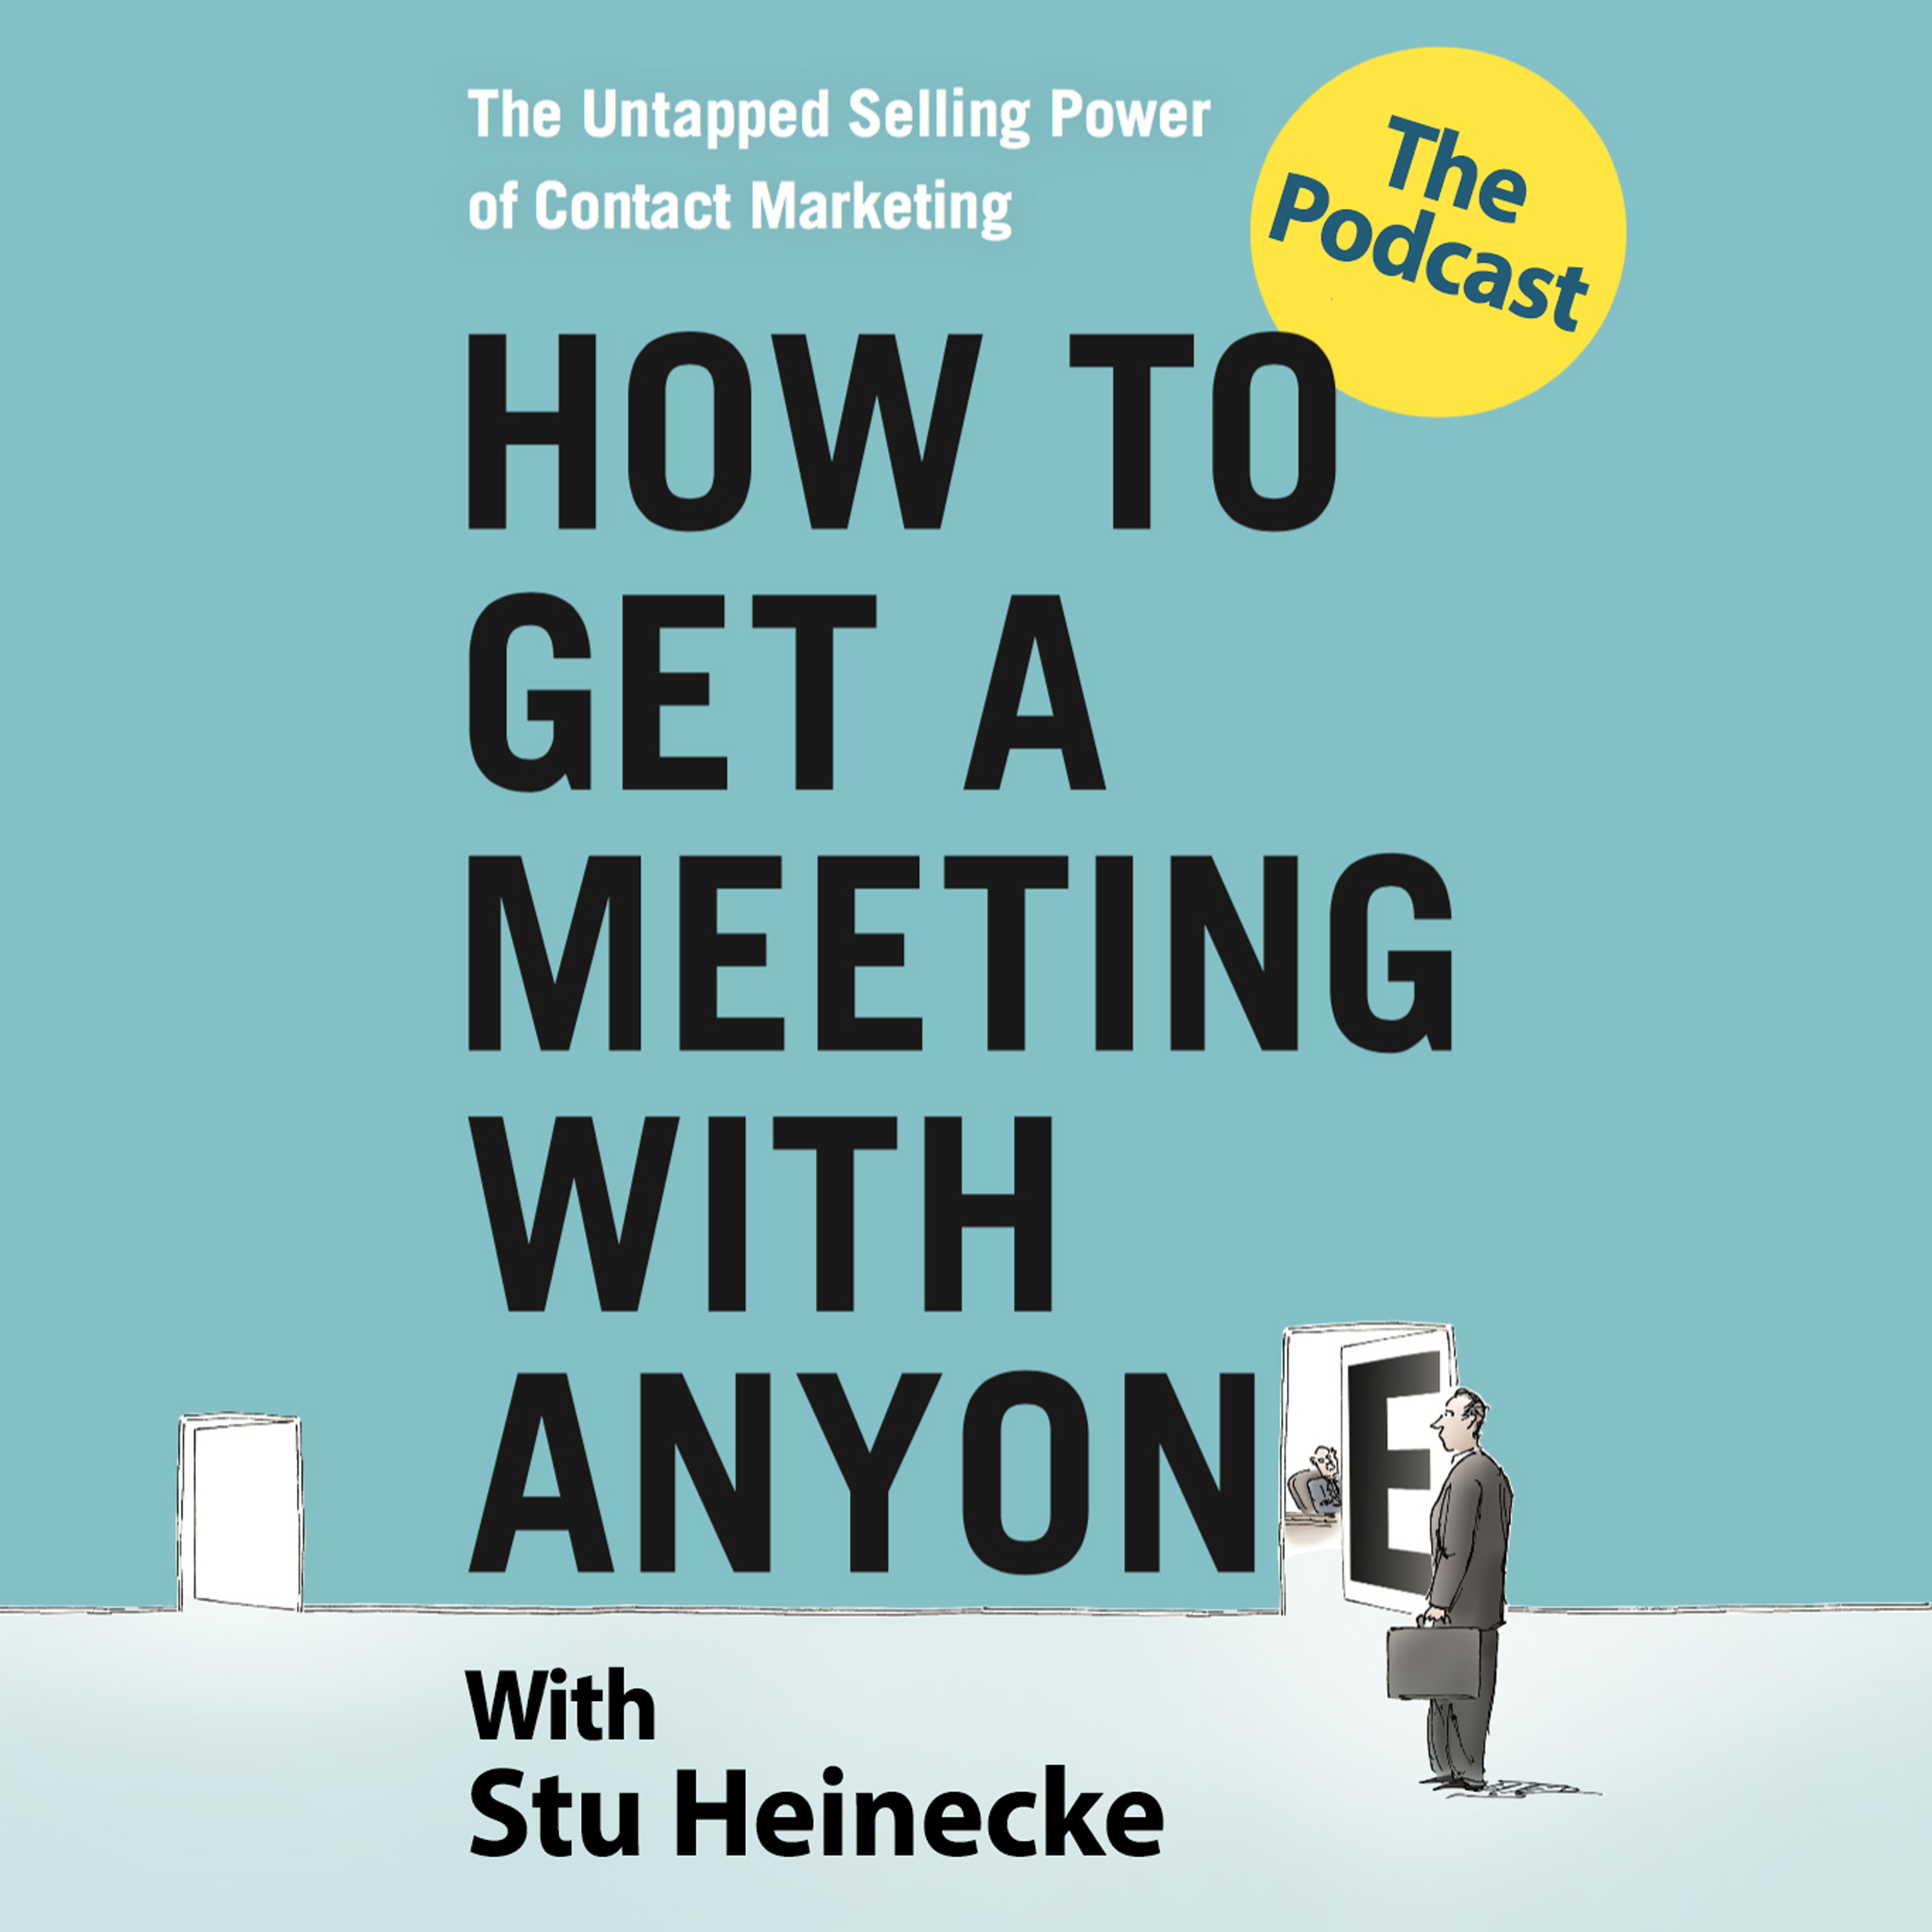 Artwork for Why You Should Listen to How to Get a Meeting With Anyone